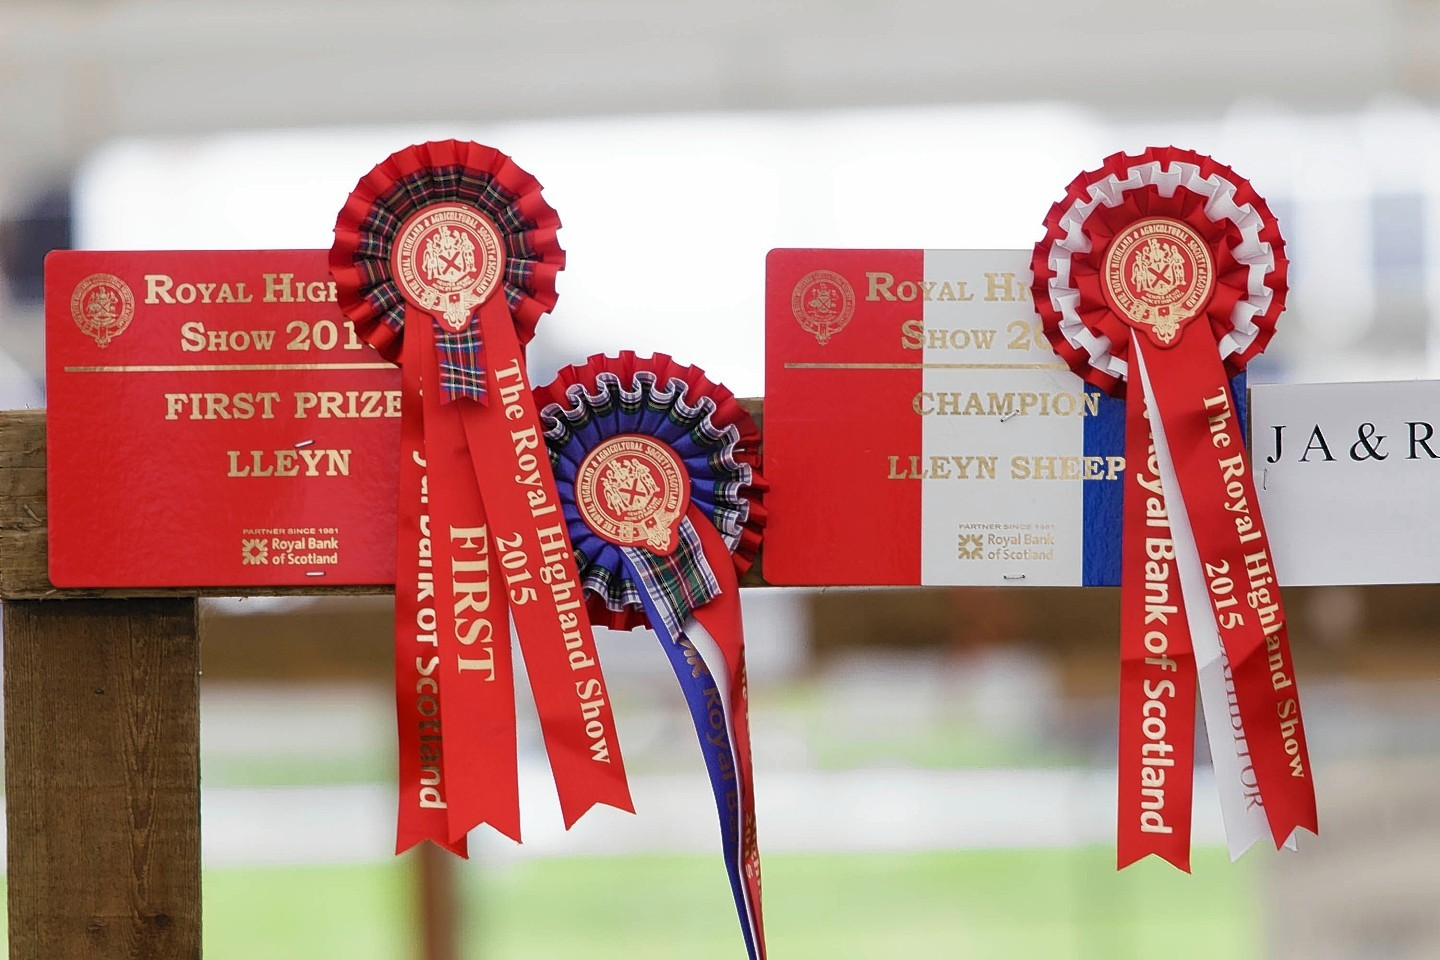 No rosettes will be awarded for poultry at this year's Royal Highland Show